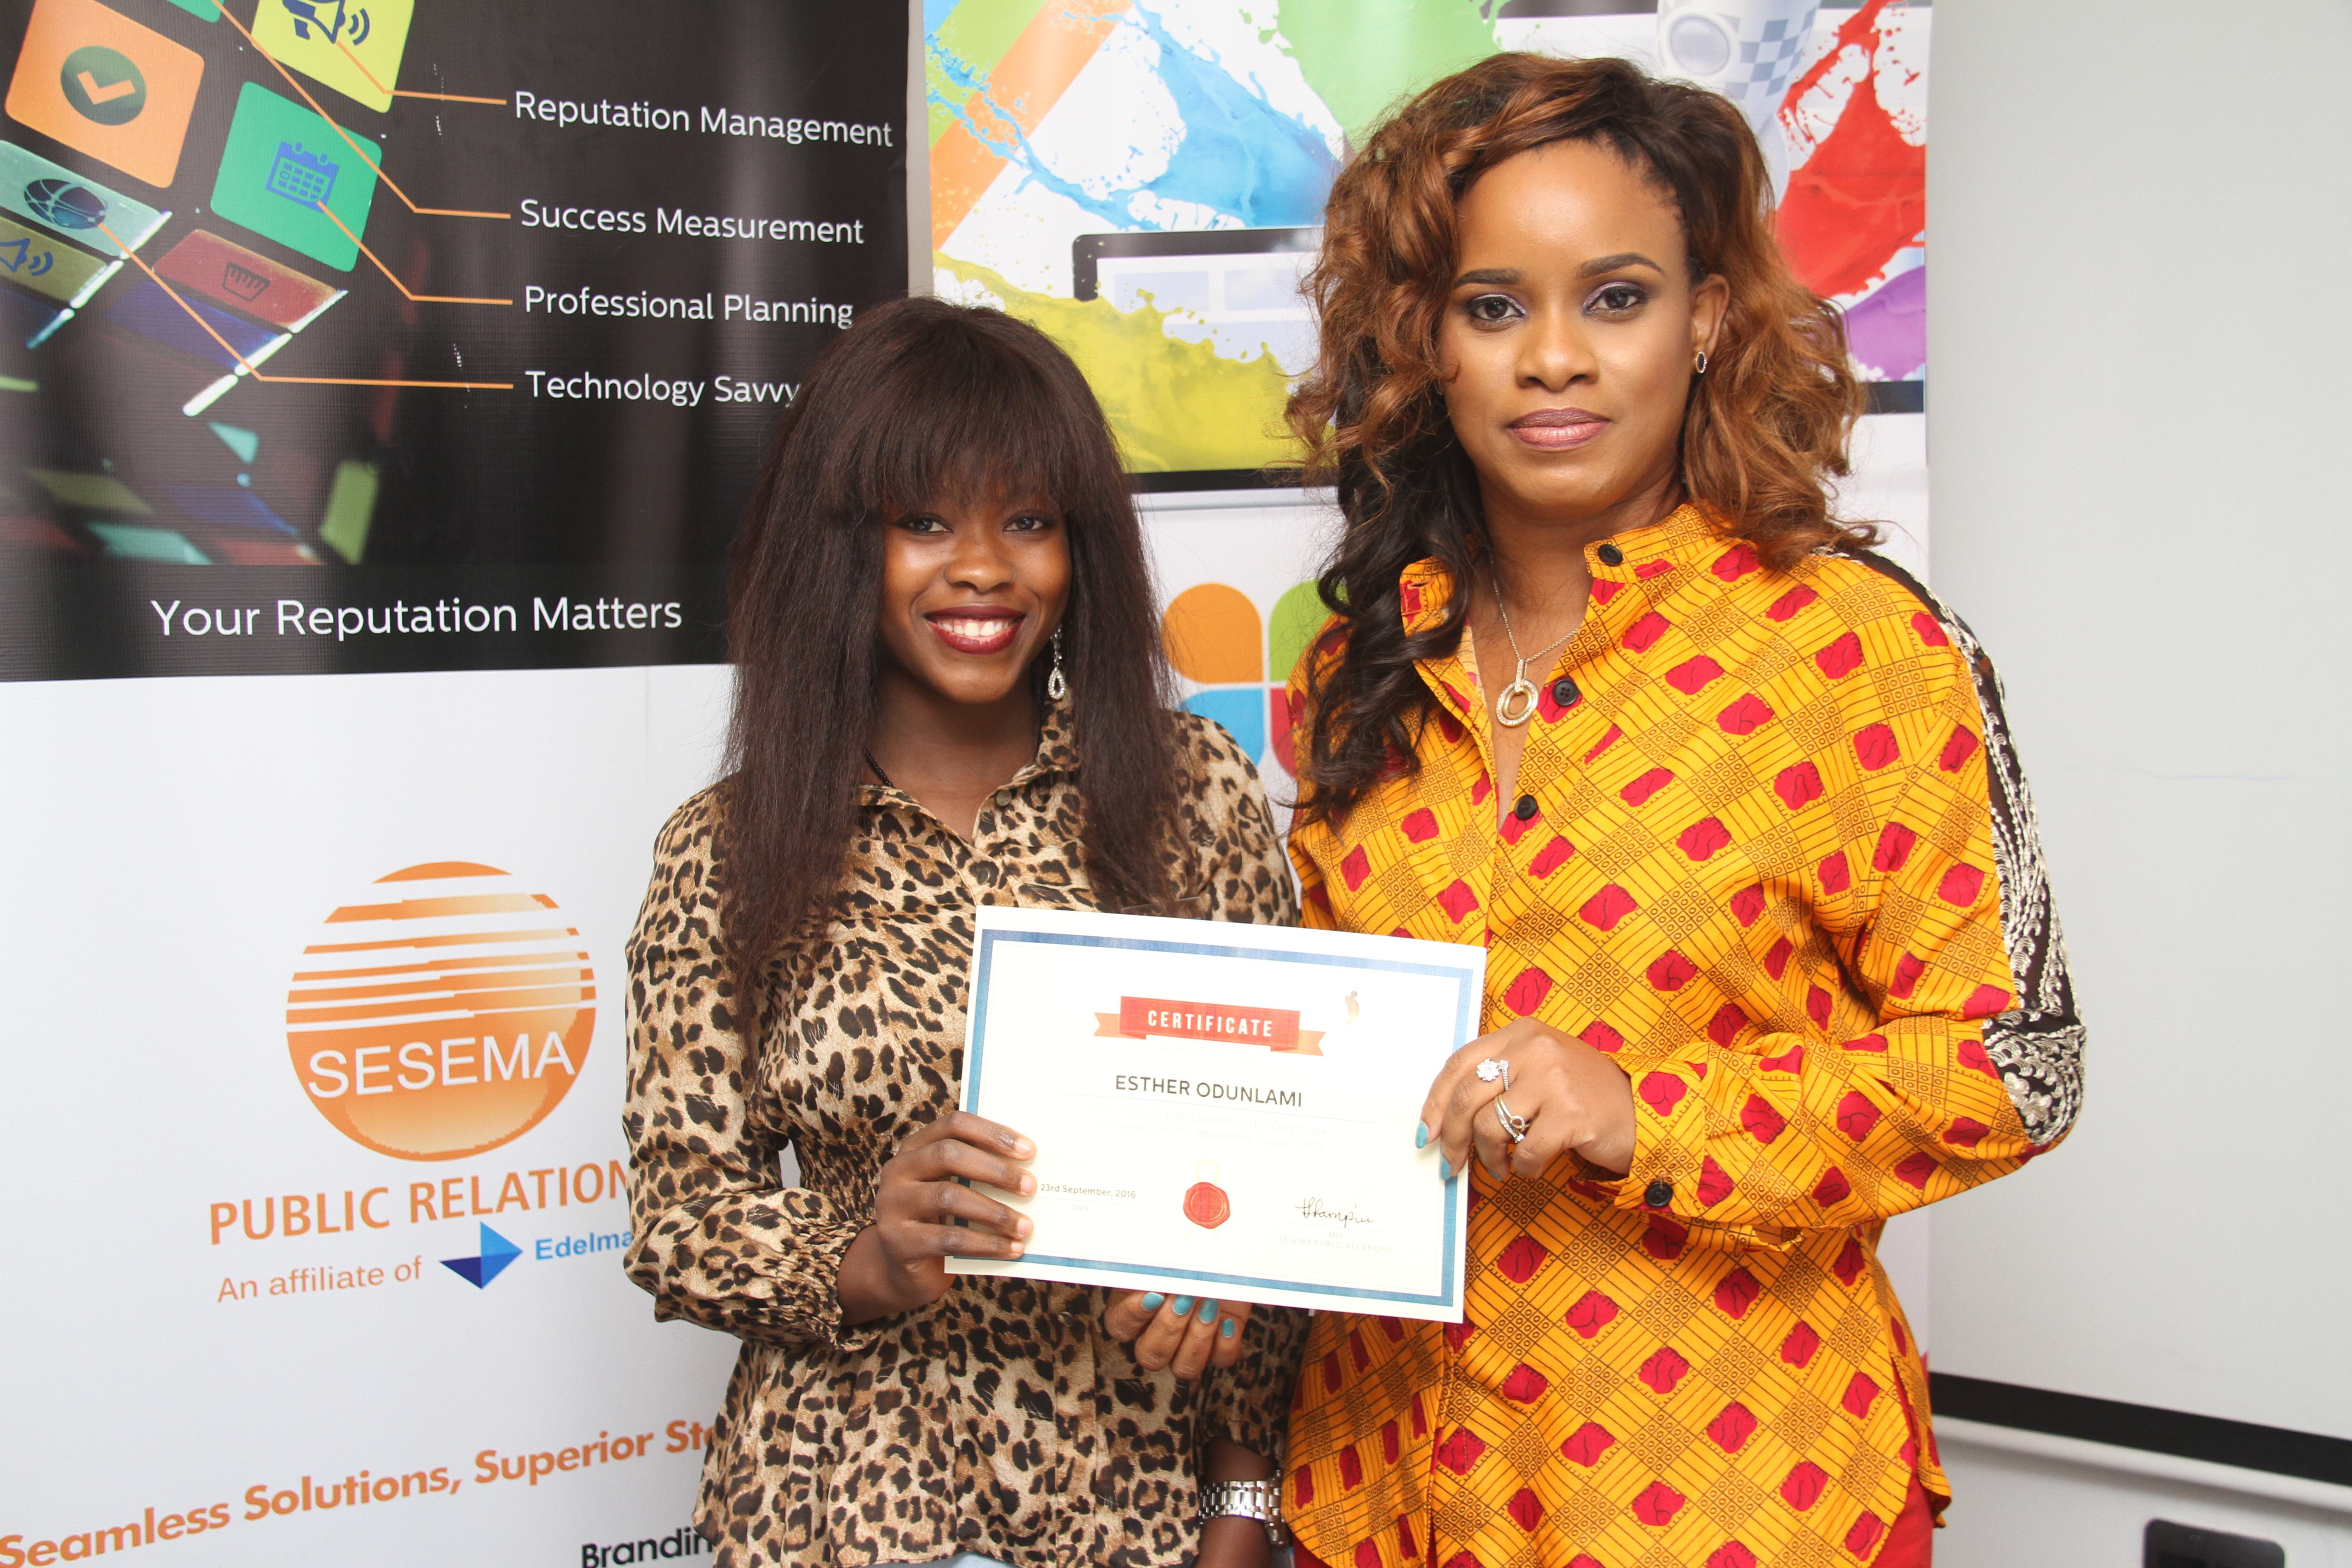 Esther Odunlami receiving her Certificate of participation from the MD Sesema PR, Tampiri Irimagha-Akemu at the Corporate Communications Interactive Forum (CCIF) organised by Sesema PR in Lagos.